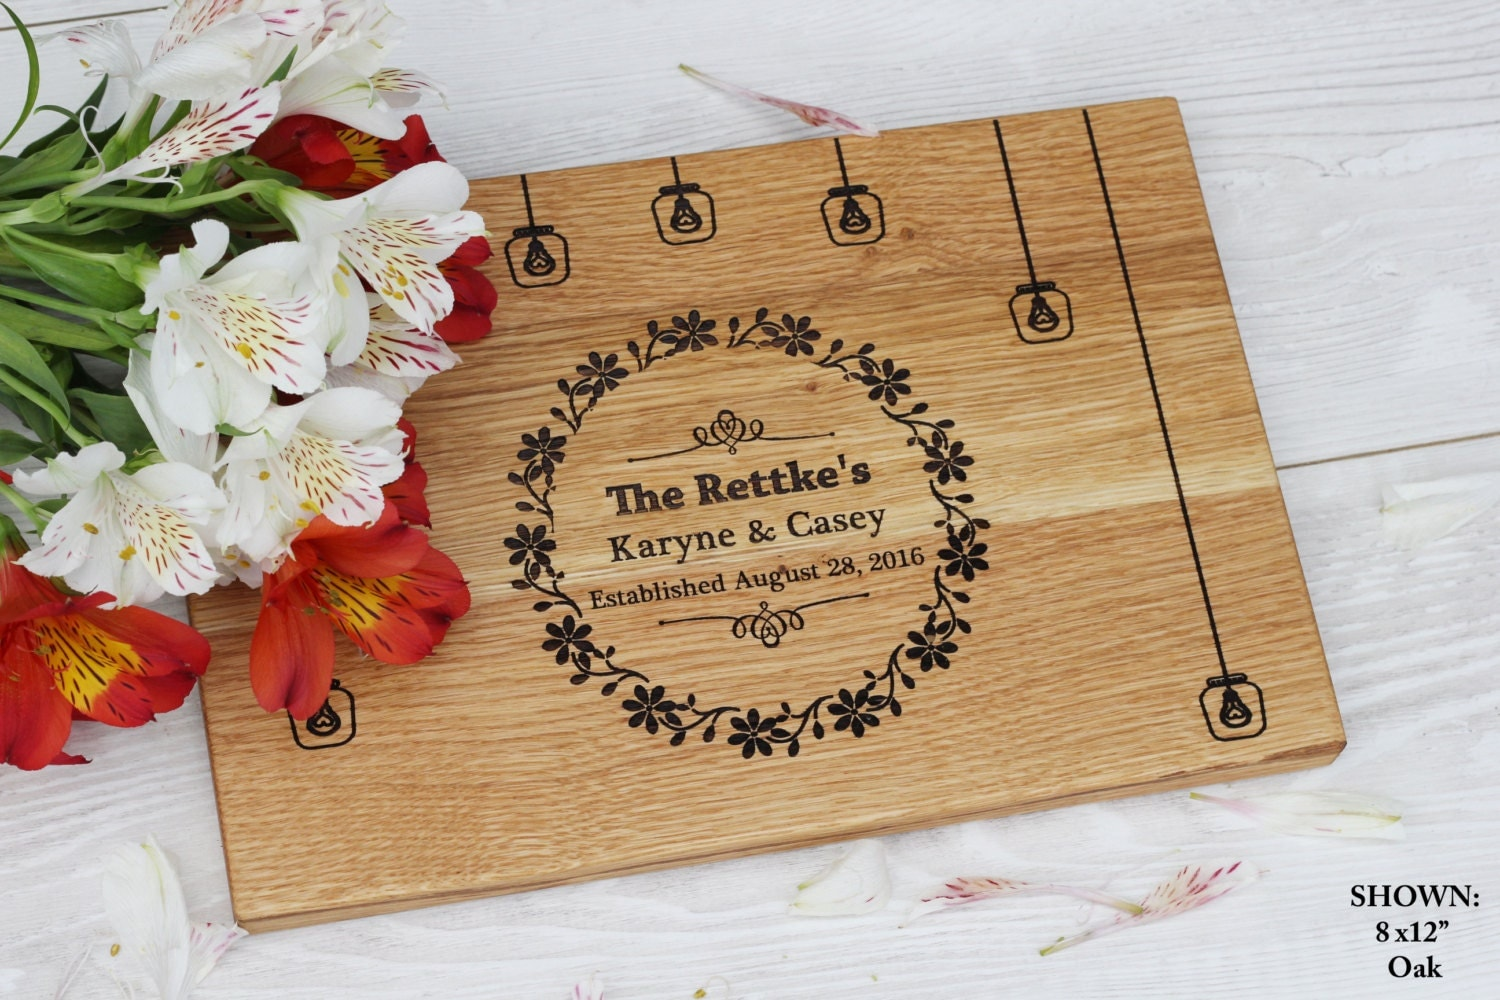 Monogram Wedding Gift Ideas: Wedding Gift Personalized Cutting Board Rustic Wedding